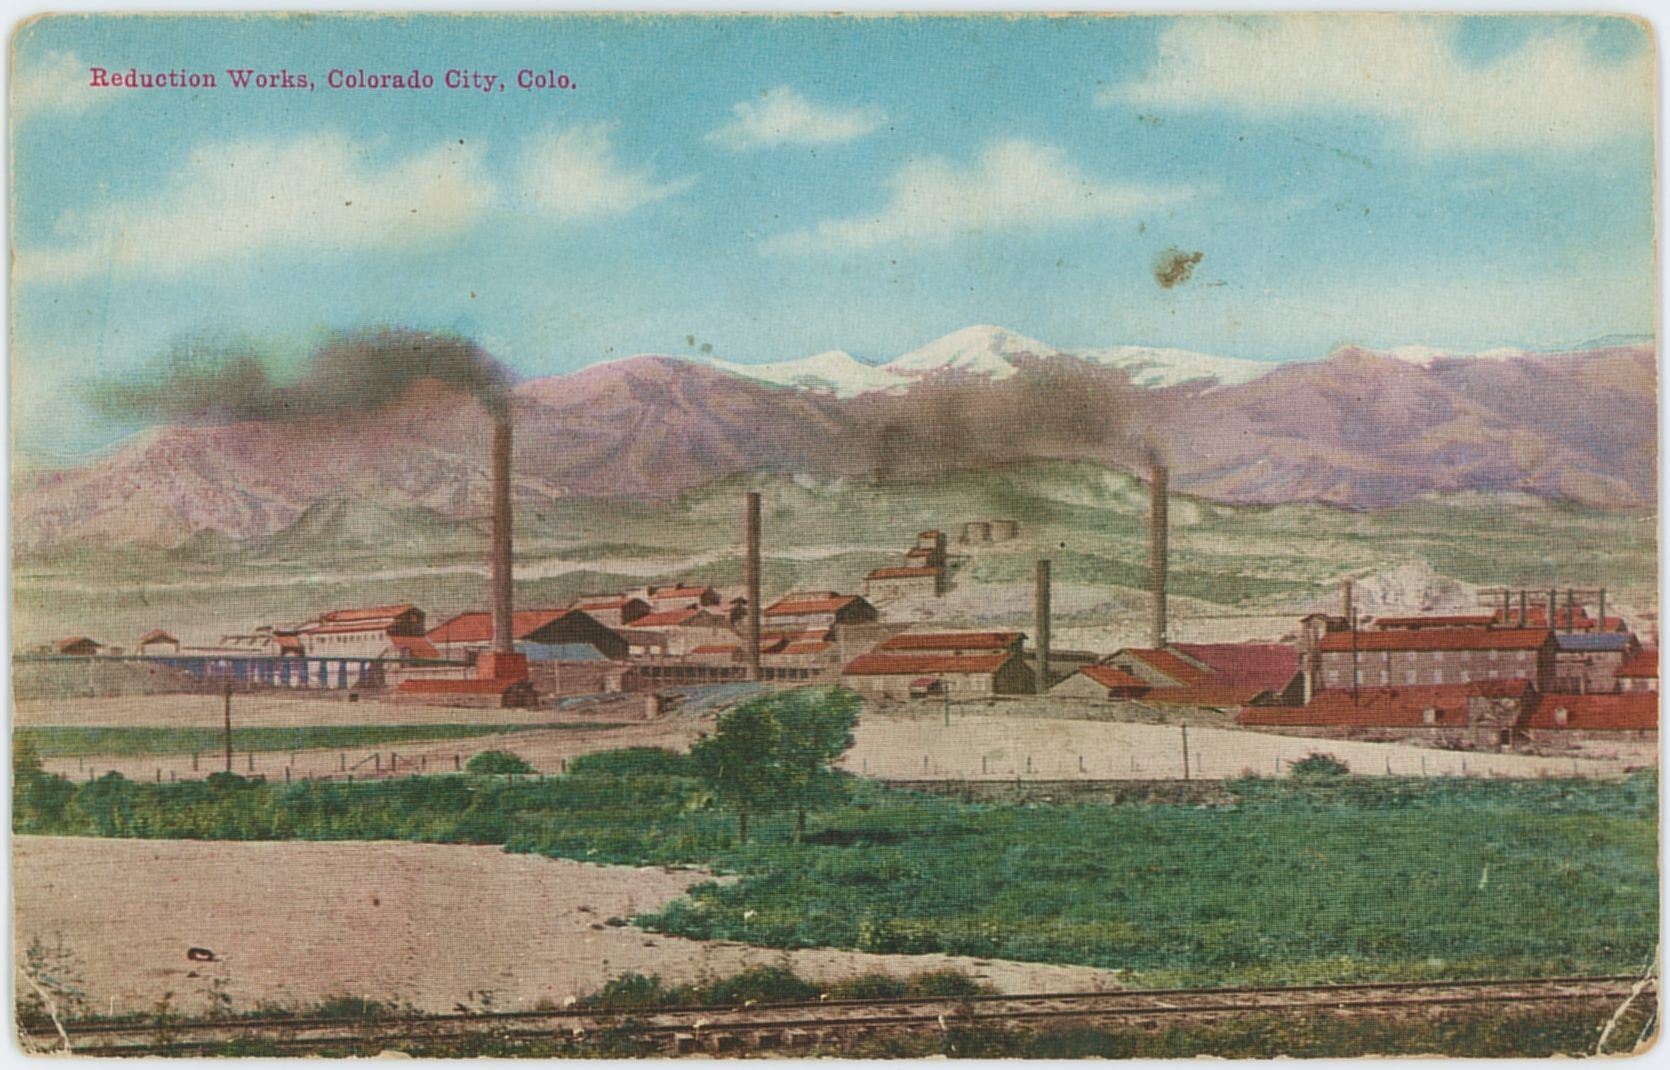 This postcard view of the massive Colorado-Philadelphia Mill, and the Standard Mill helps give the impression on how huge these mills can be, laying in the outskirts to the west of Colorado City, with what I believe is the mainline of the Colorado Midland seen along the bottom edge.    If I am correct the structures to the right are part of the Standard Mill, while the ones furthest away, left side of the card, those are the structures of the Colorado-Philadelphia Mill.